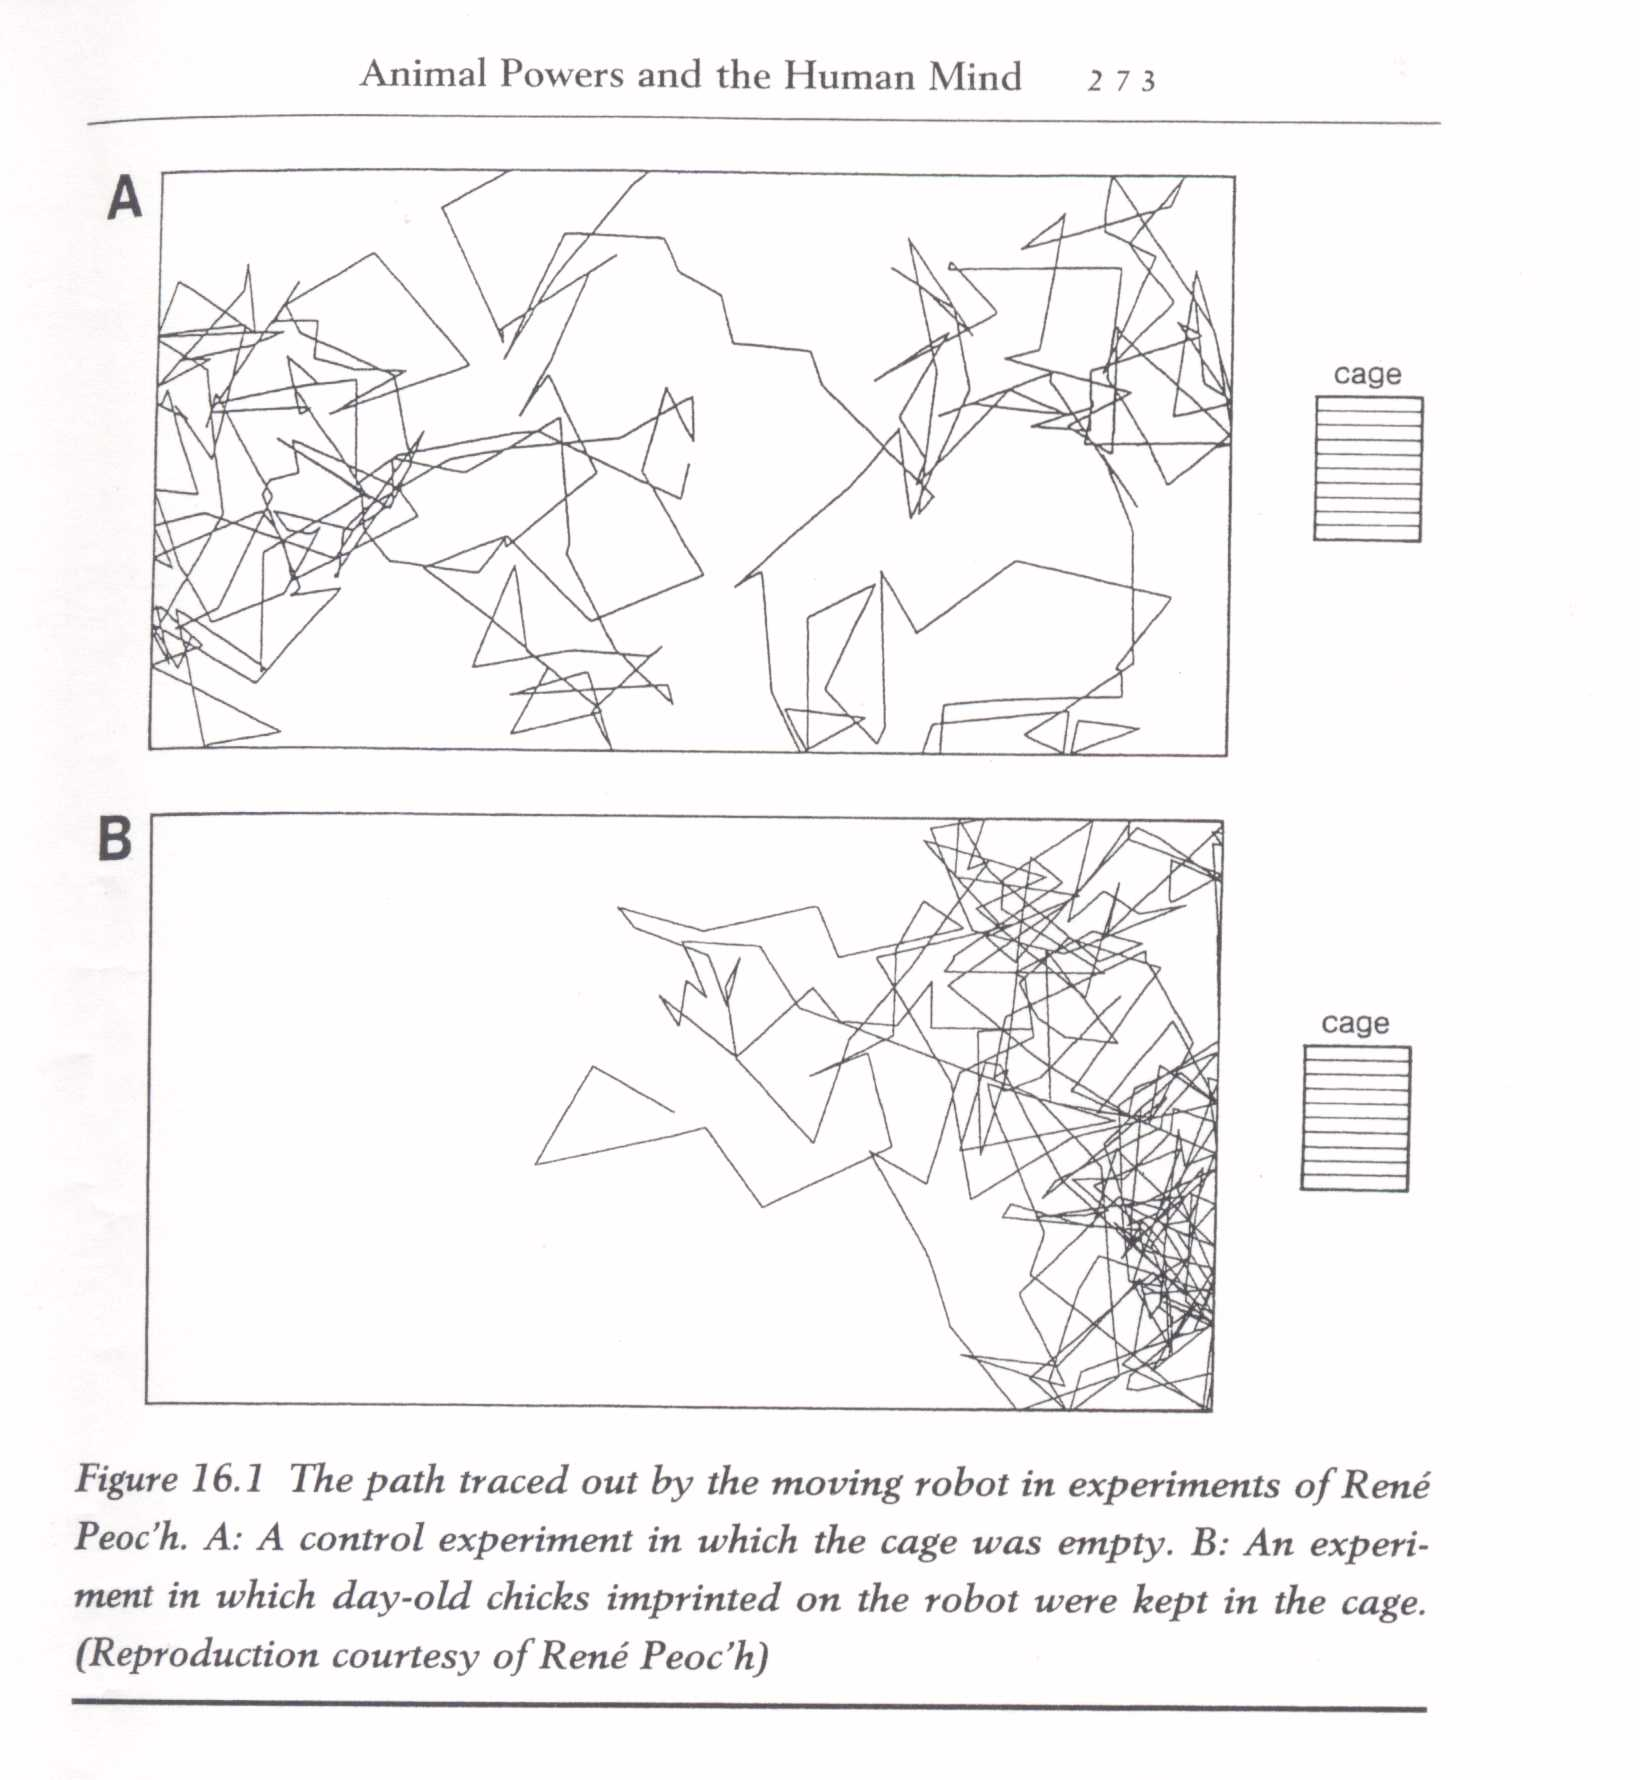 1986, 1995 -  CHICKENS AFFECT ROBOT MOVEMENT -René Peoc'h, french researcher. In his 1986 investigations, Peoc'h established that chickens who had imprinted onto a robot and then placed in a cage in a room where the robot was under a random movement programme,were able to draw the robot closer to the cage. Non-imprinted chickens had no effect on the robot (above diagram). In 1995 Peoc'h extended these experiments. Again using chickens, in this series of experiments he examined whether chickens would be able to draw a robot carrying a light closer to their cage - the experiment took place in a darkened room. Peoc'h hypothesised that as chickens do not like to be in the dark during the day that 'somehow' they would draw the robot closer. (Thechickens were not imprinted to the robot.) As in the 1986 experiments, he found that the chickens were able to affect the movement of the robot.